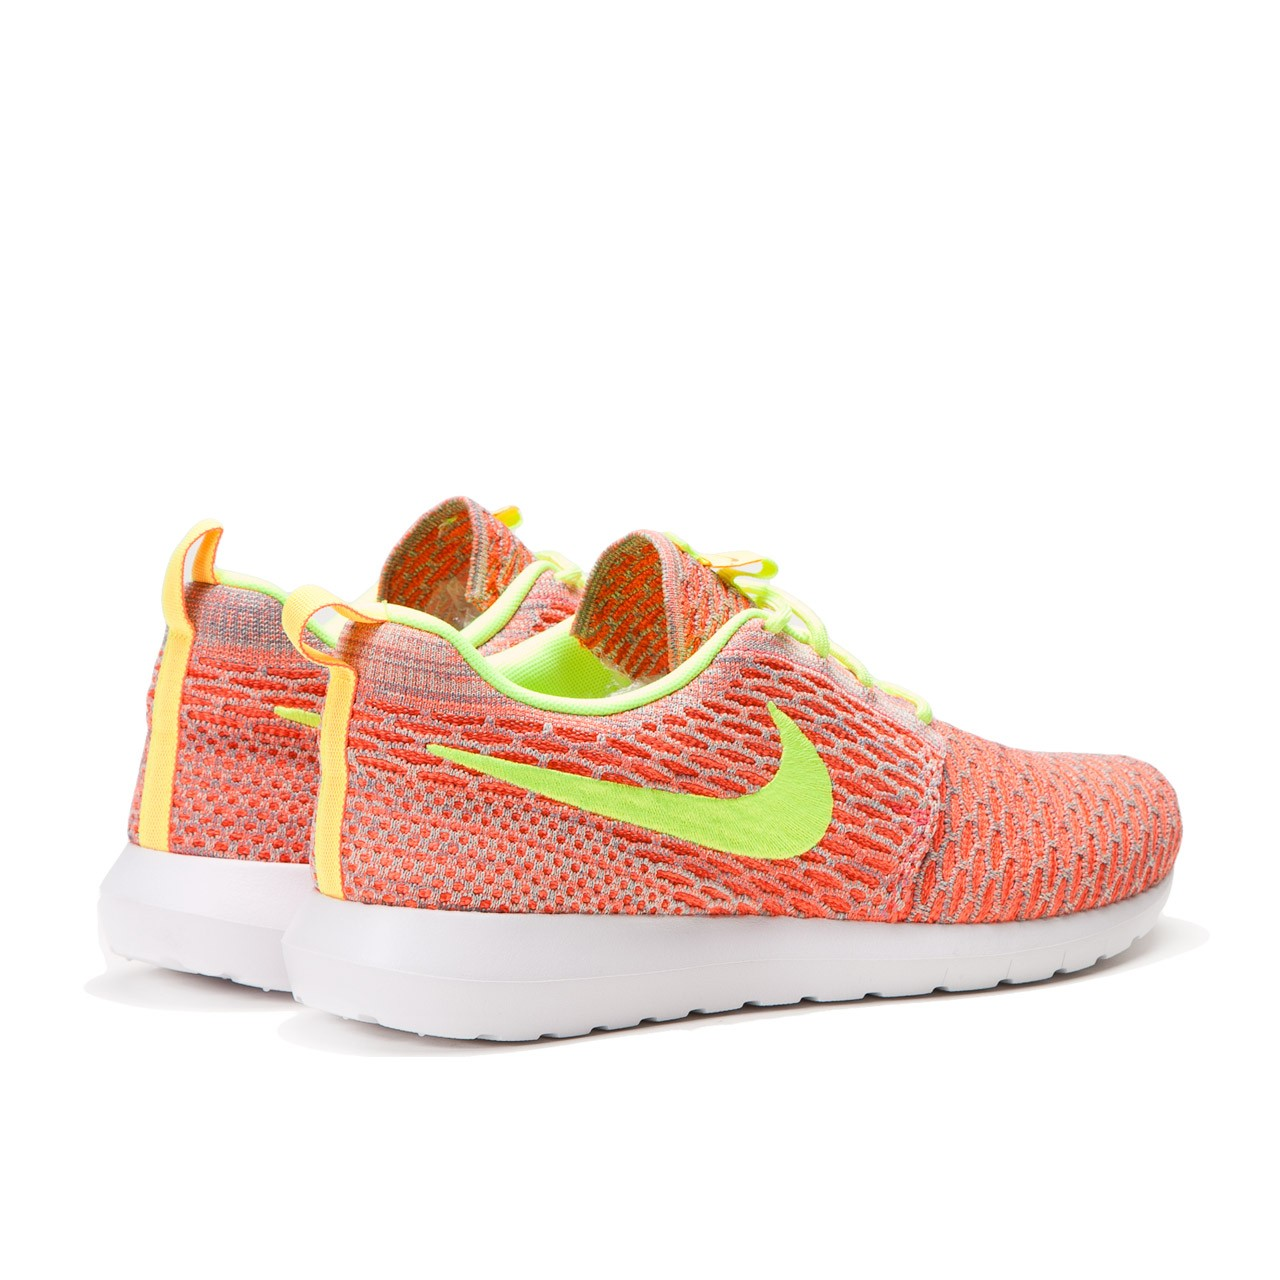 new product 27cbc ba757 nike flyknit roshe run yellow orange